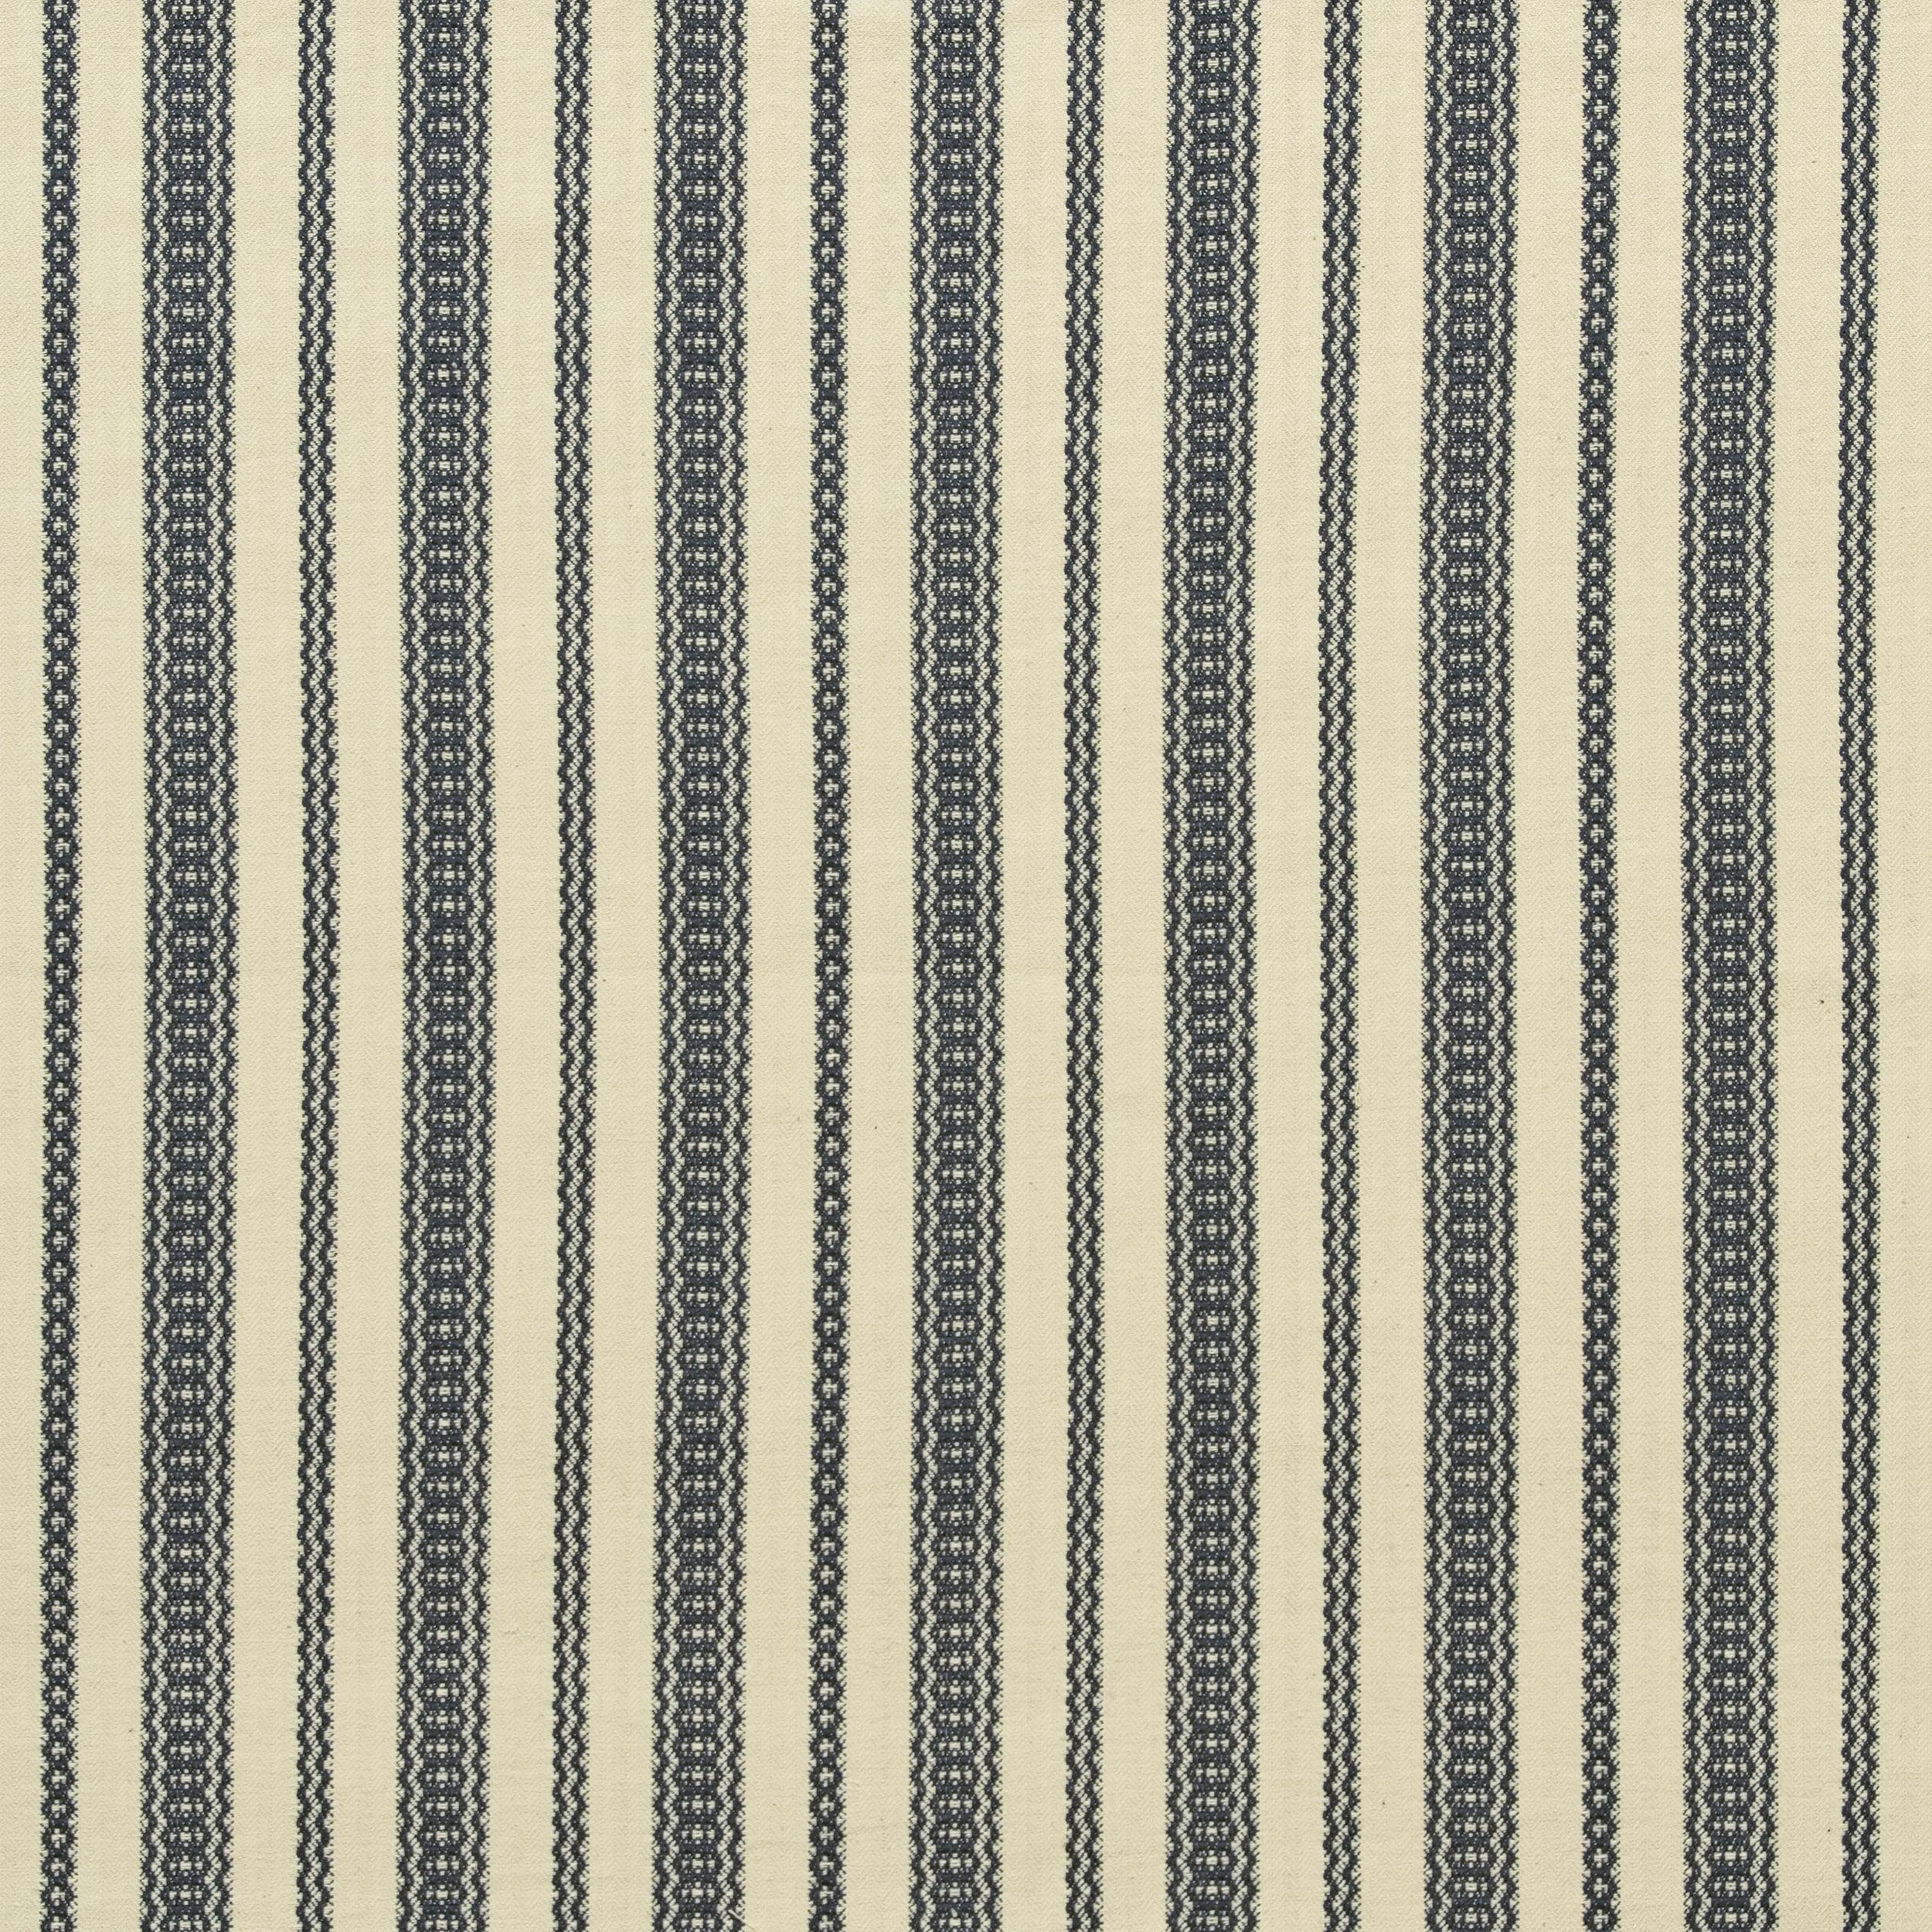 <p><strong>PAYSON</strong>navy 1713-07<a href=/the-brooke-collection/navy-1713-07>More →</a></p>